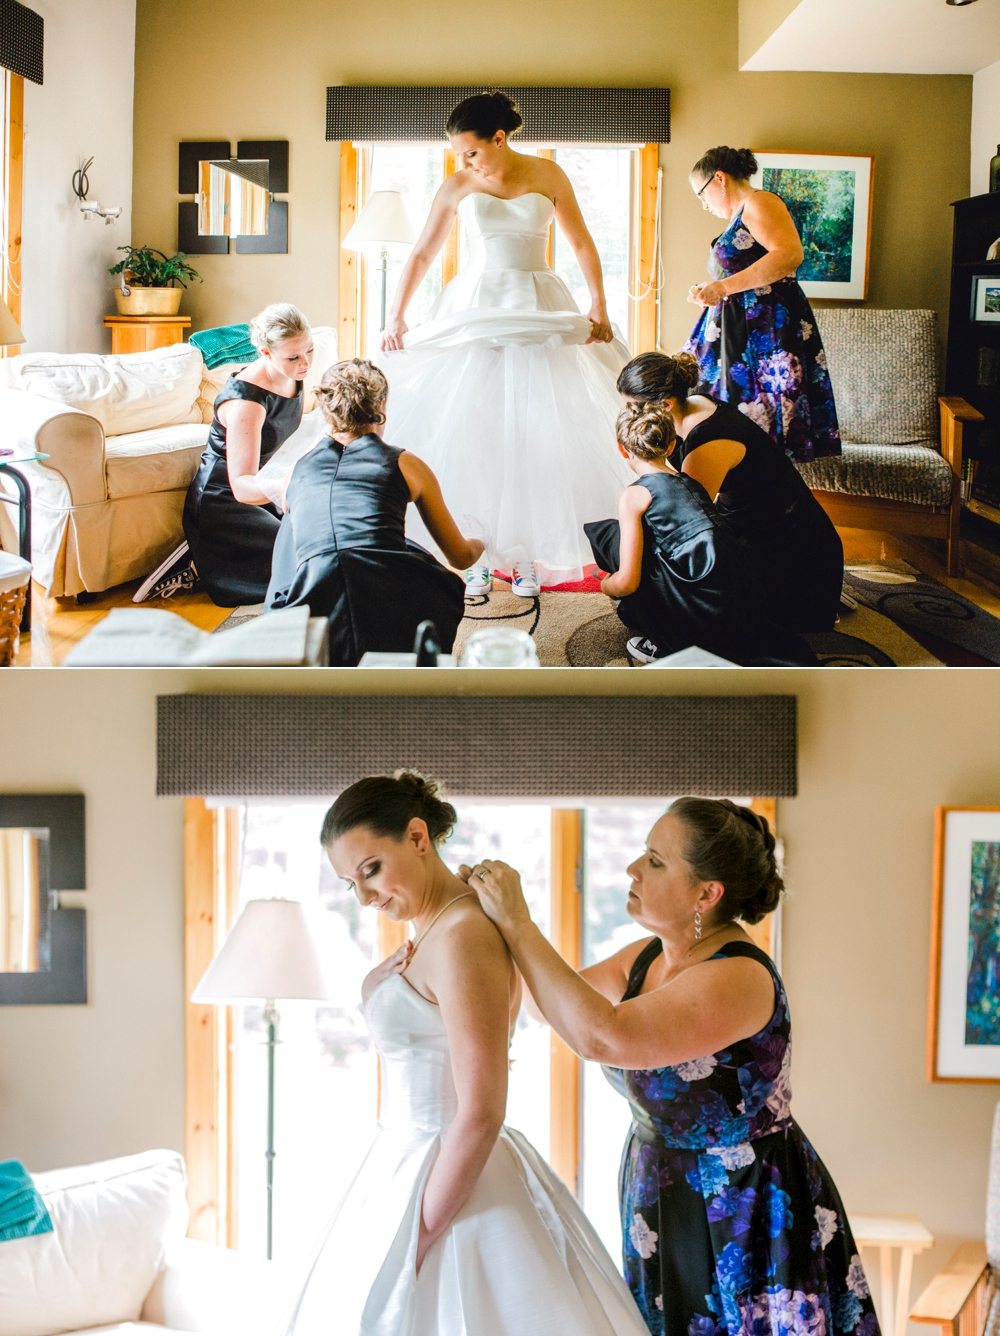 SomerbyJonesPhotography__VermontWedding_VTWedding_BackyardVermontWedding_0007.jpg